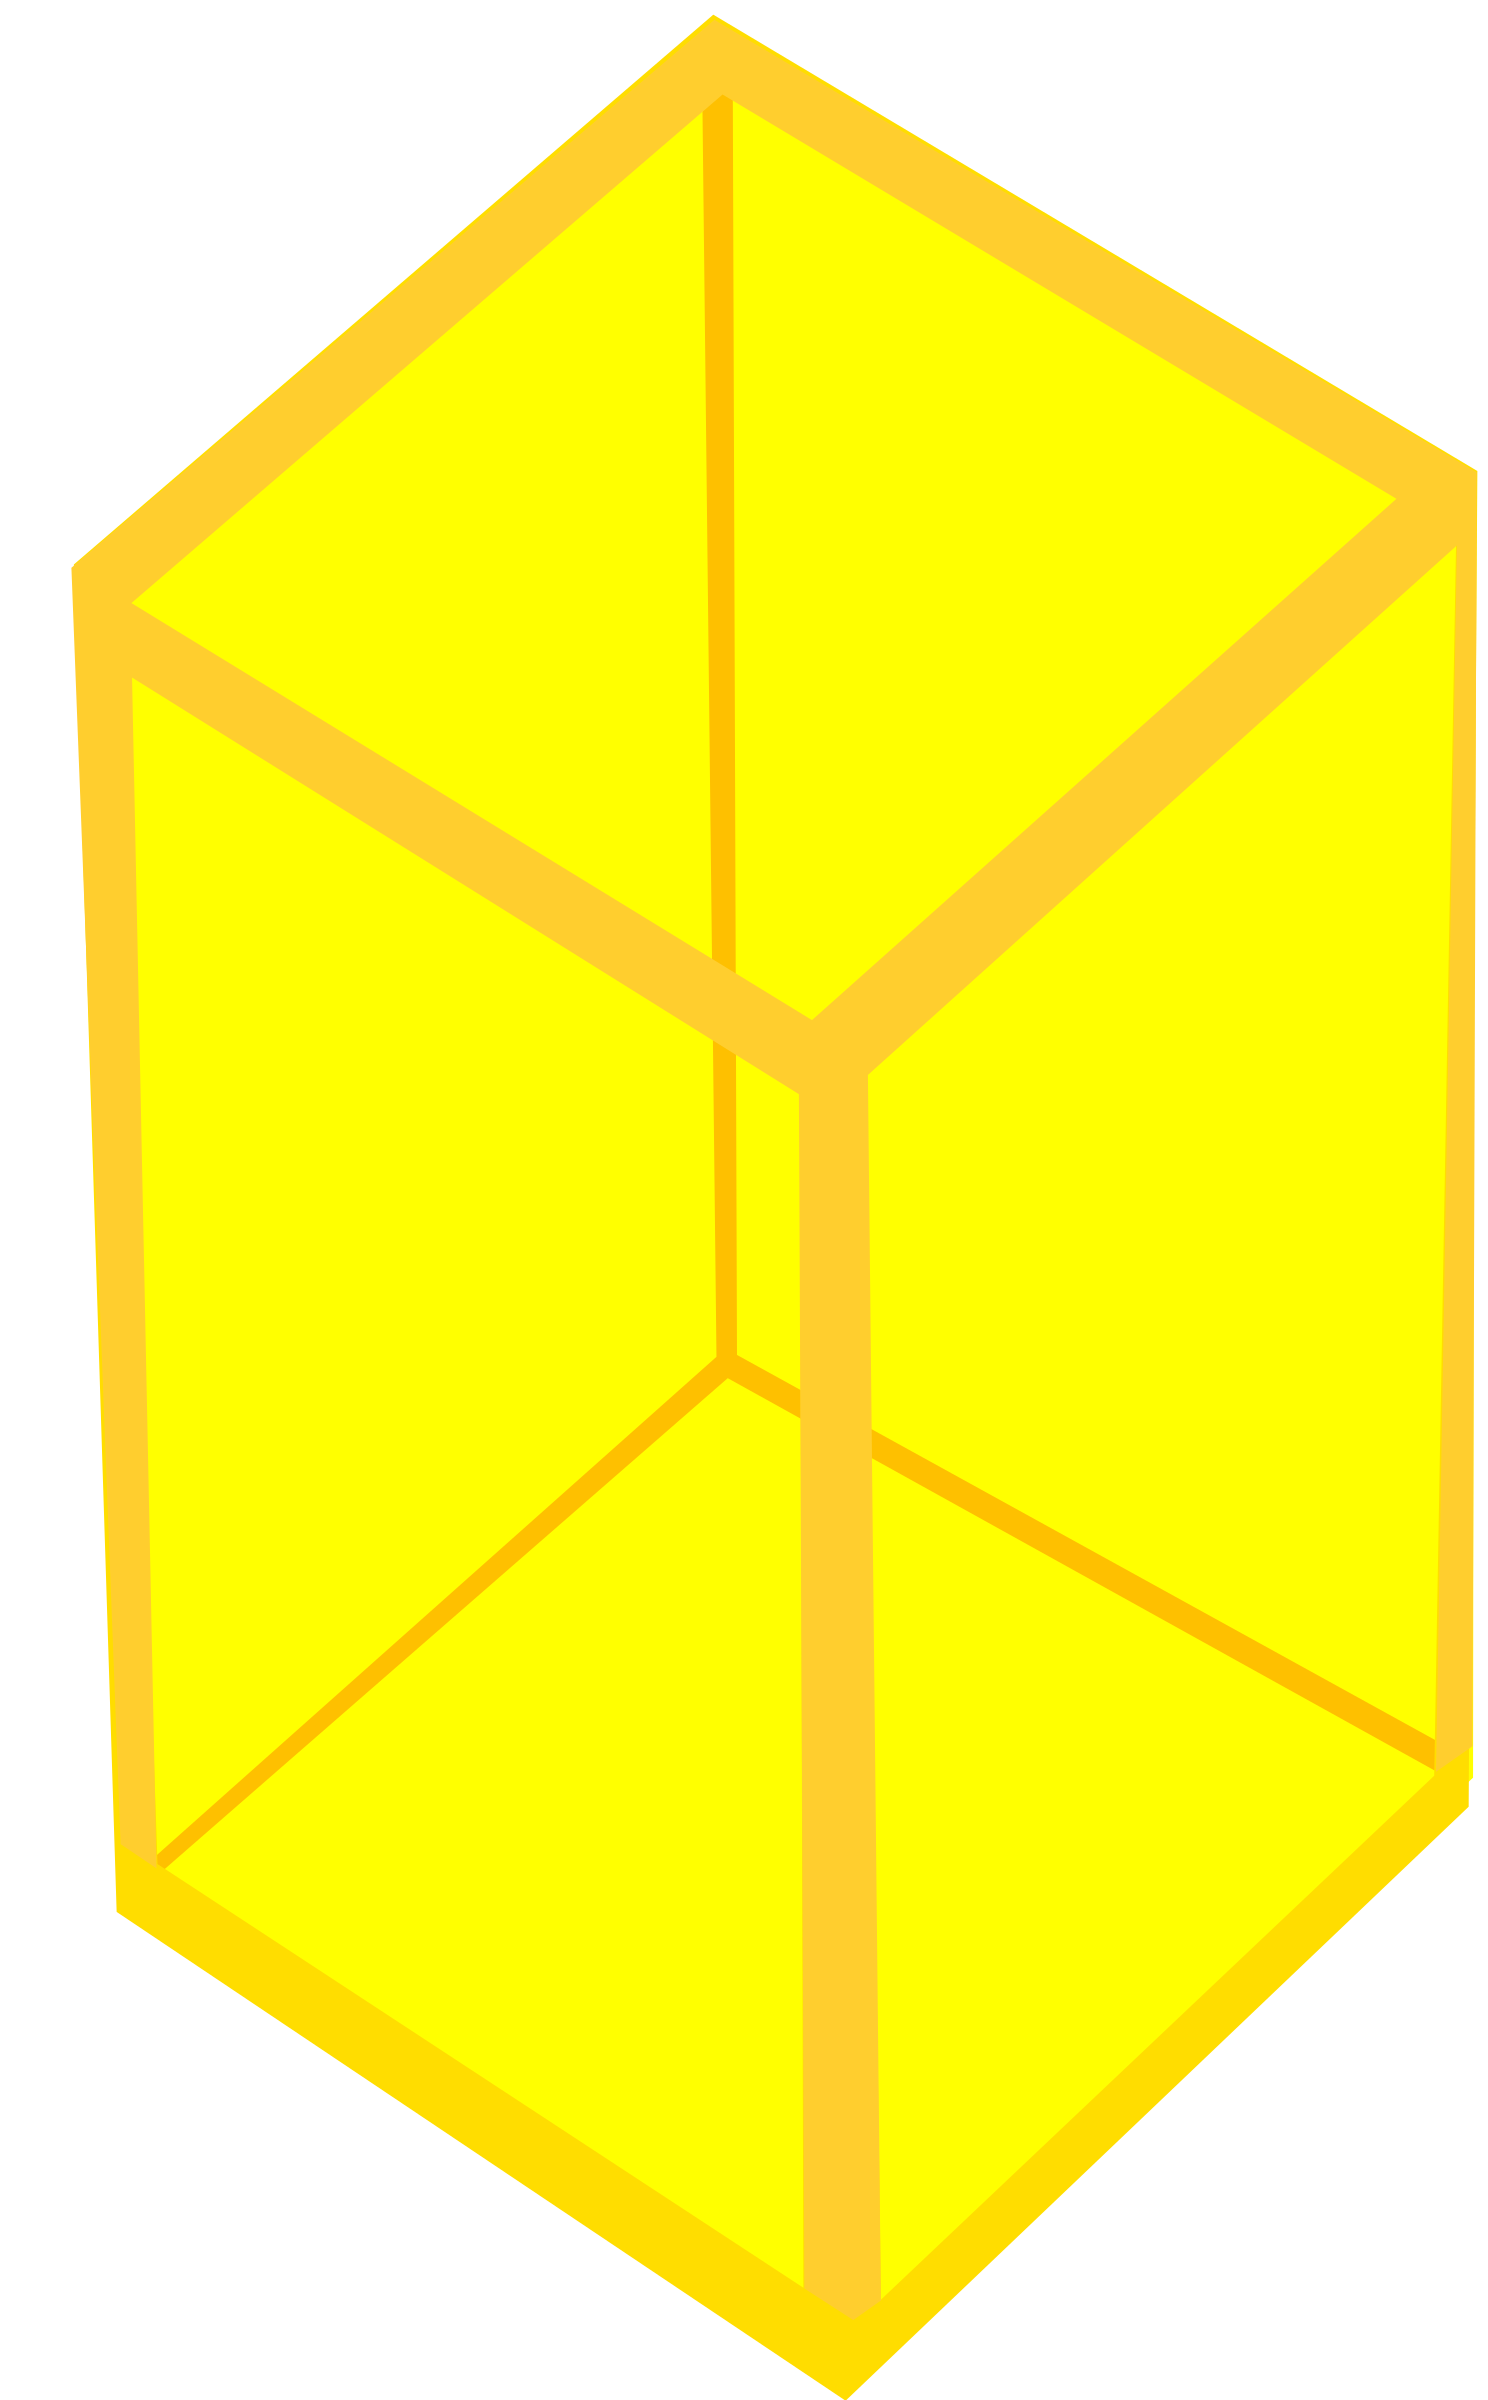 Yellow Transparent Cube by Rfc1394